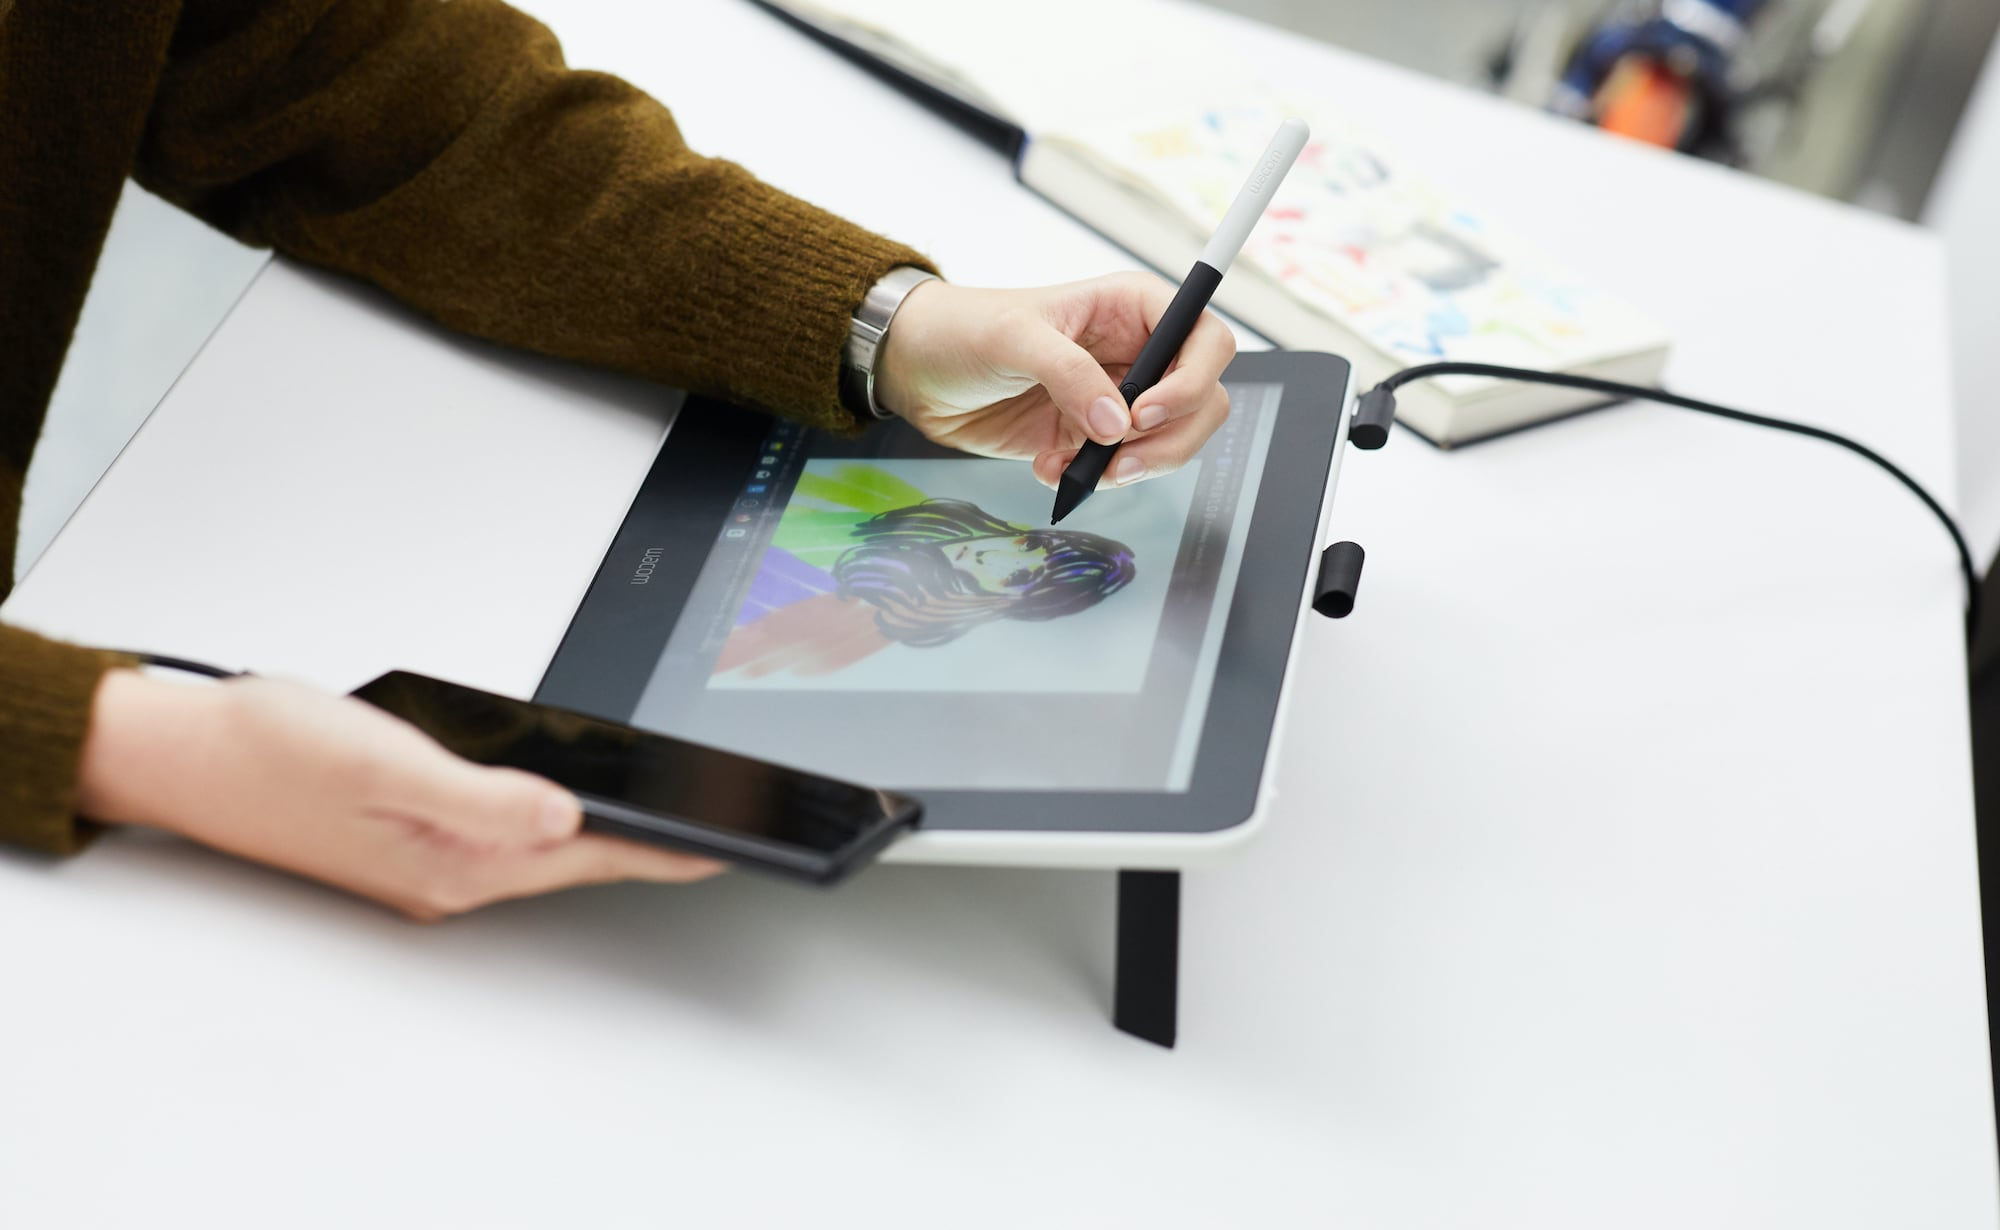 Wacom One Creative Pen Display makes you feel like you're drawing on paper